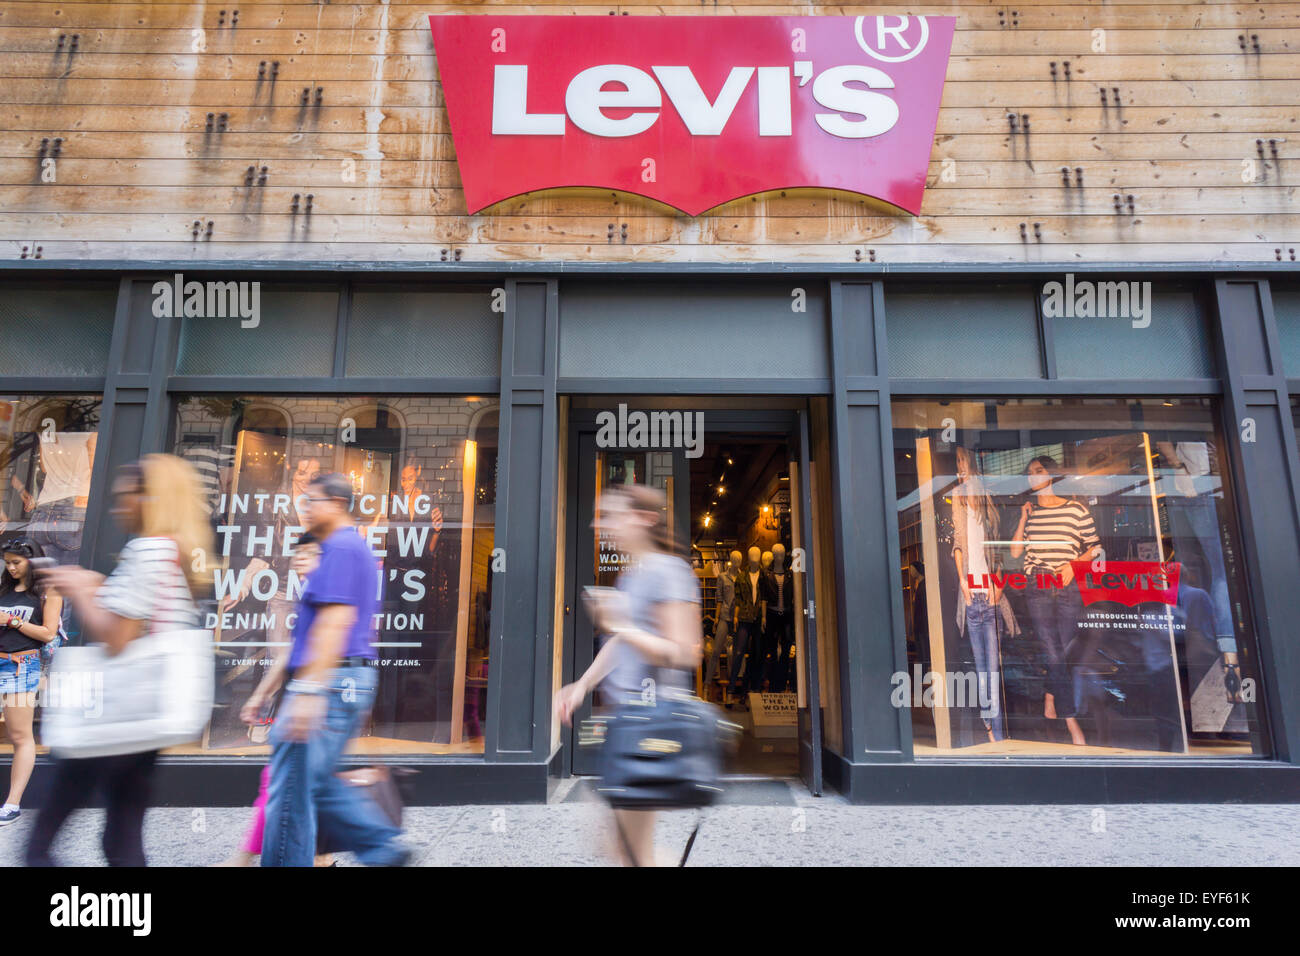 343daf26 The Levi's store in Herald Square in New York on Friday, July 24, 2015